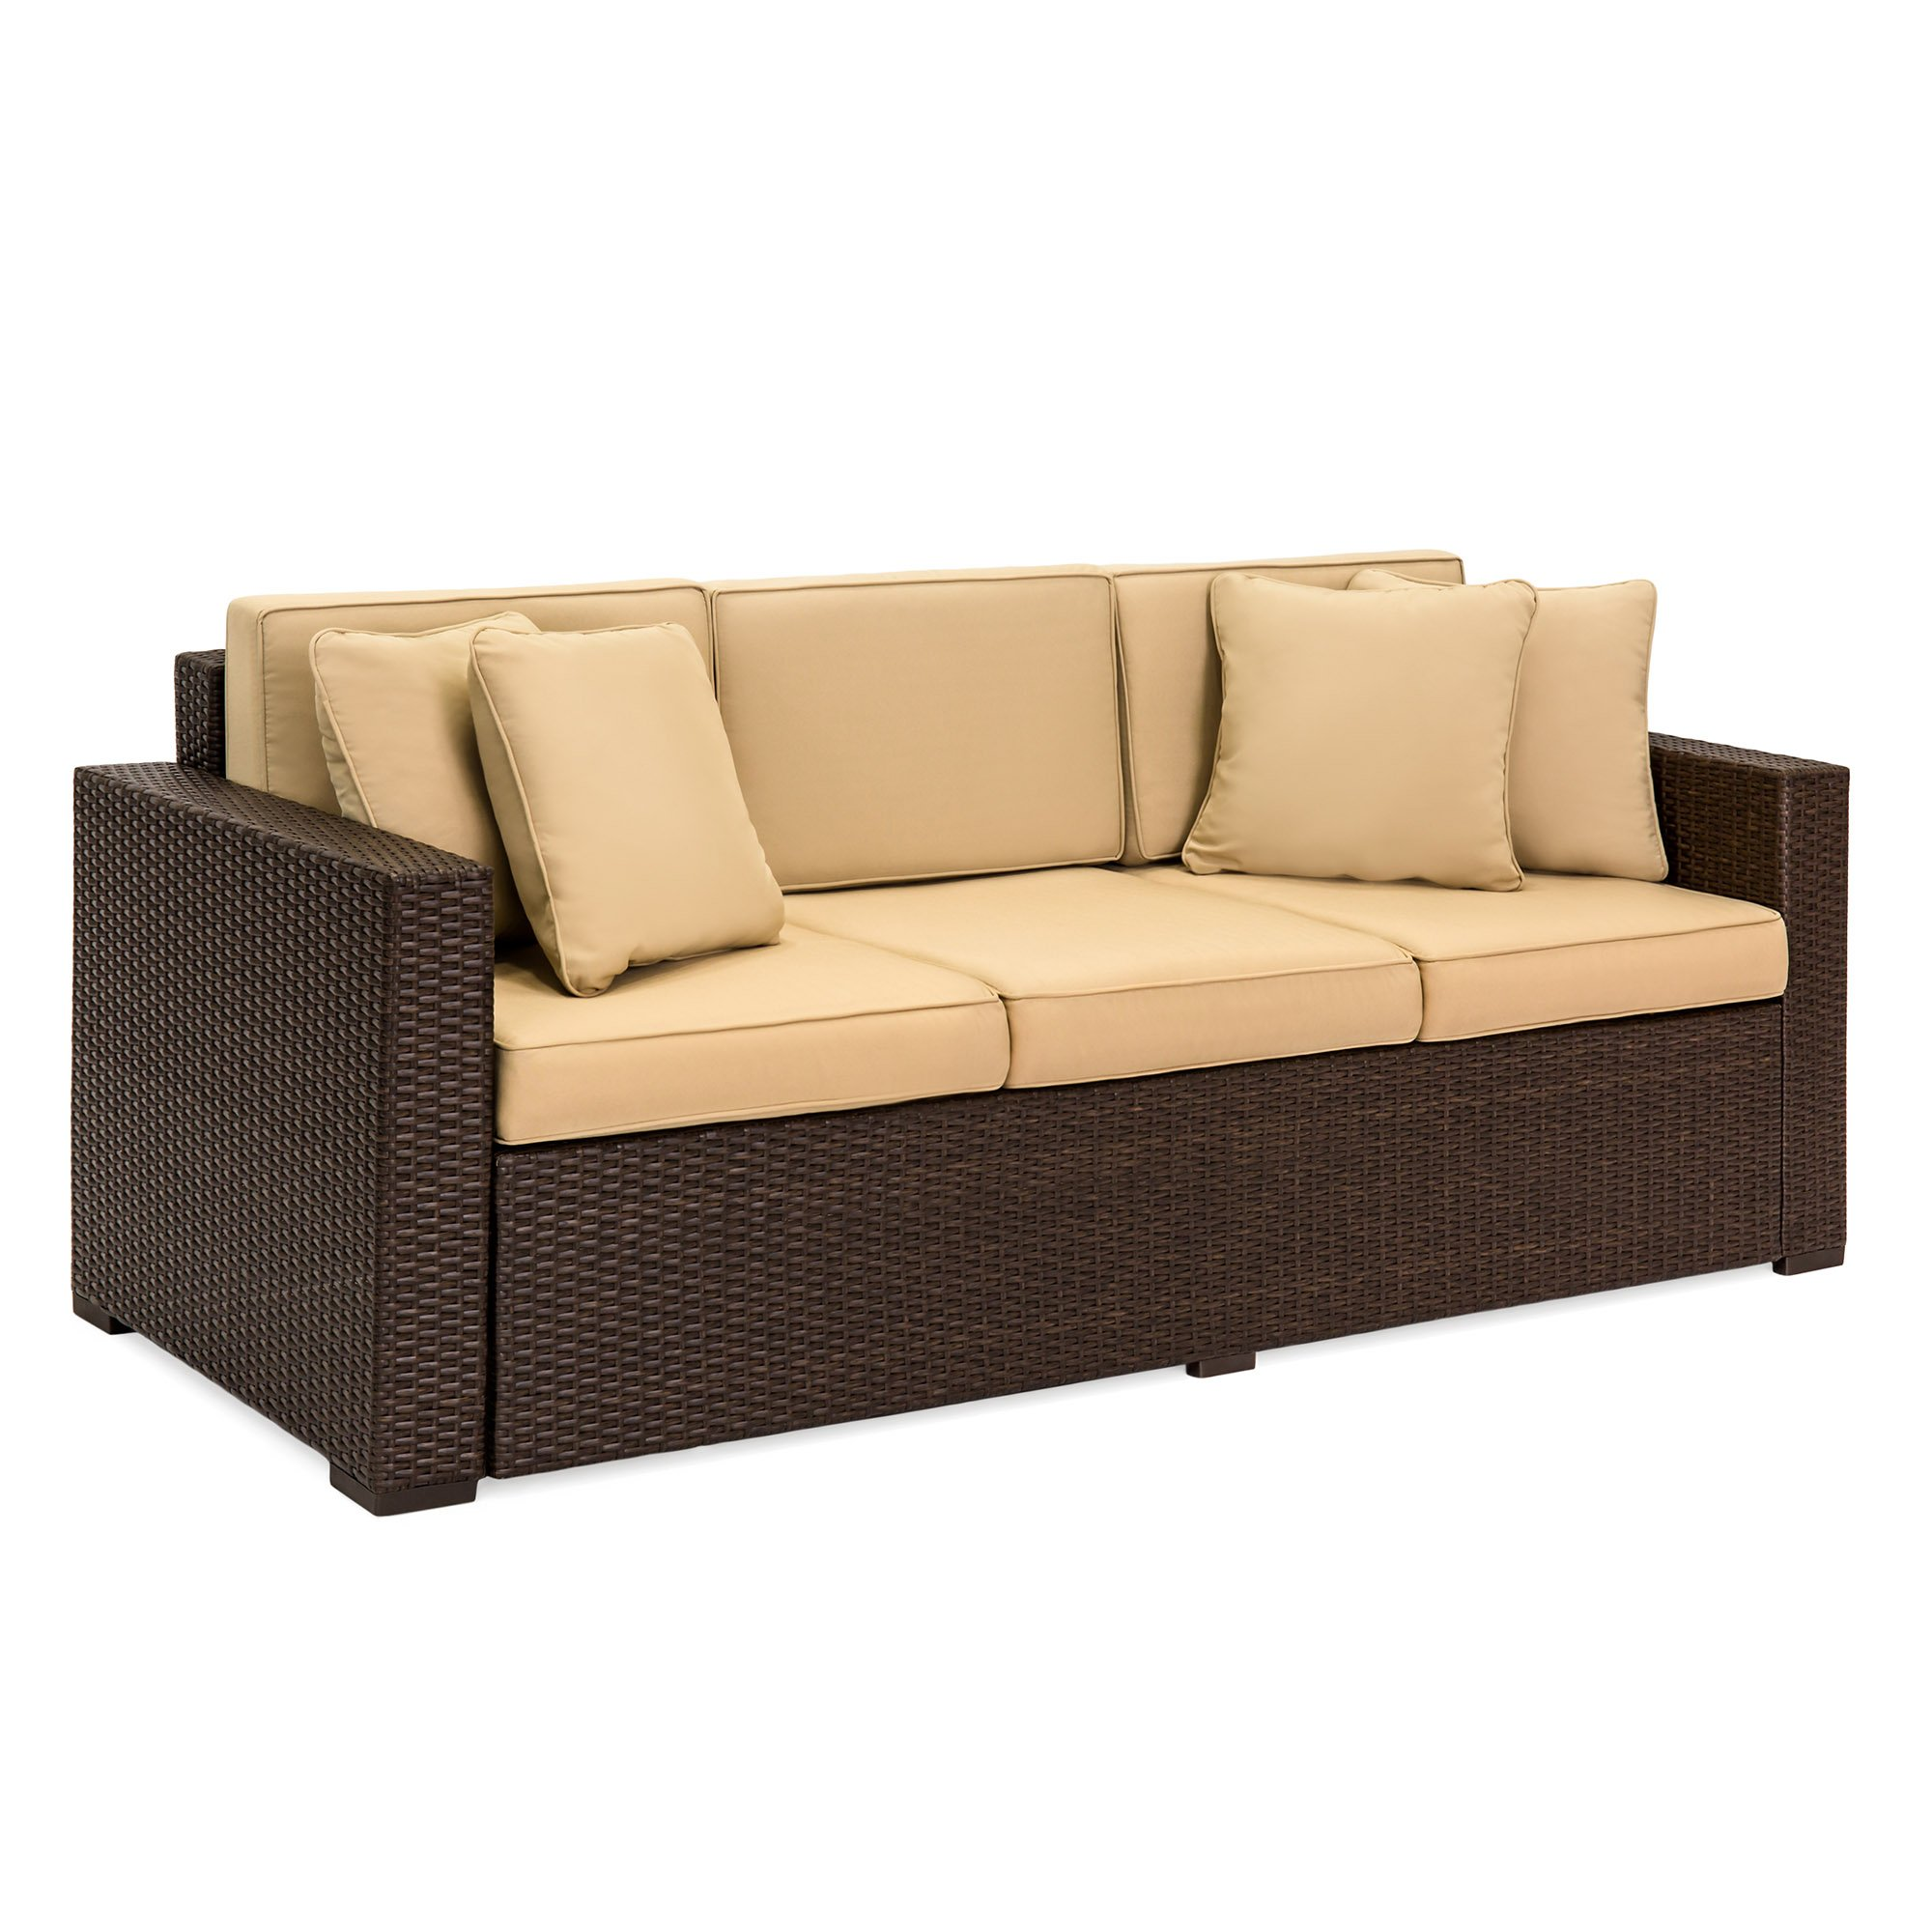 Best Choice Products 3-Seat Outdoor Wicker Sofa Couch Patio Furniture w/ Steel Frame and Removable Cushions - Brown by Best Choice Products